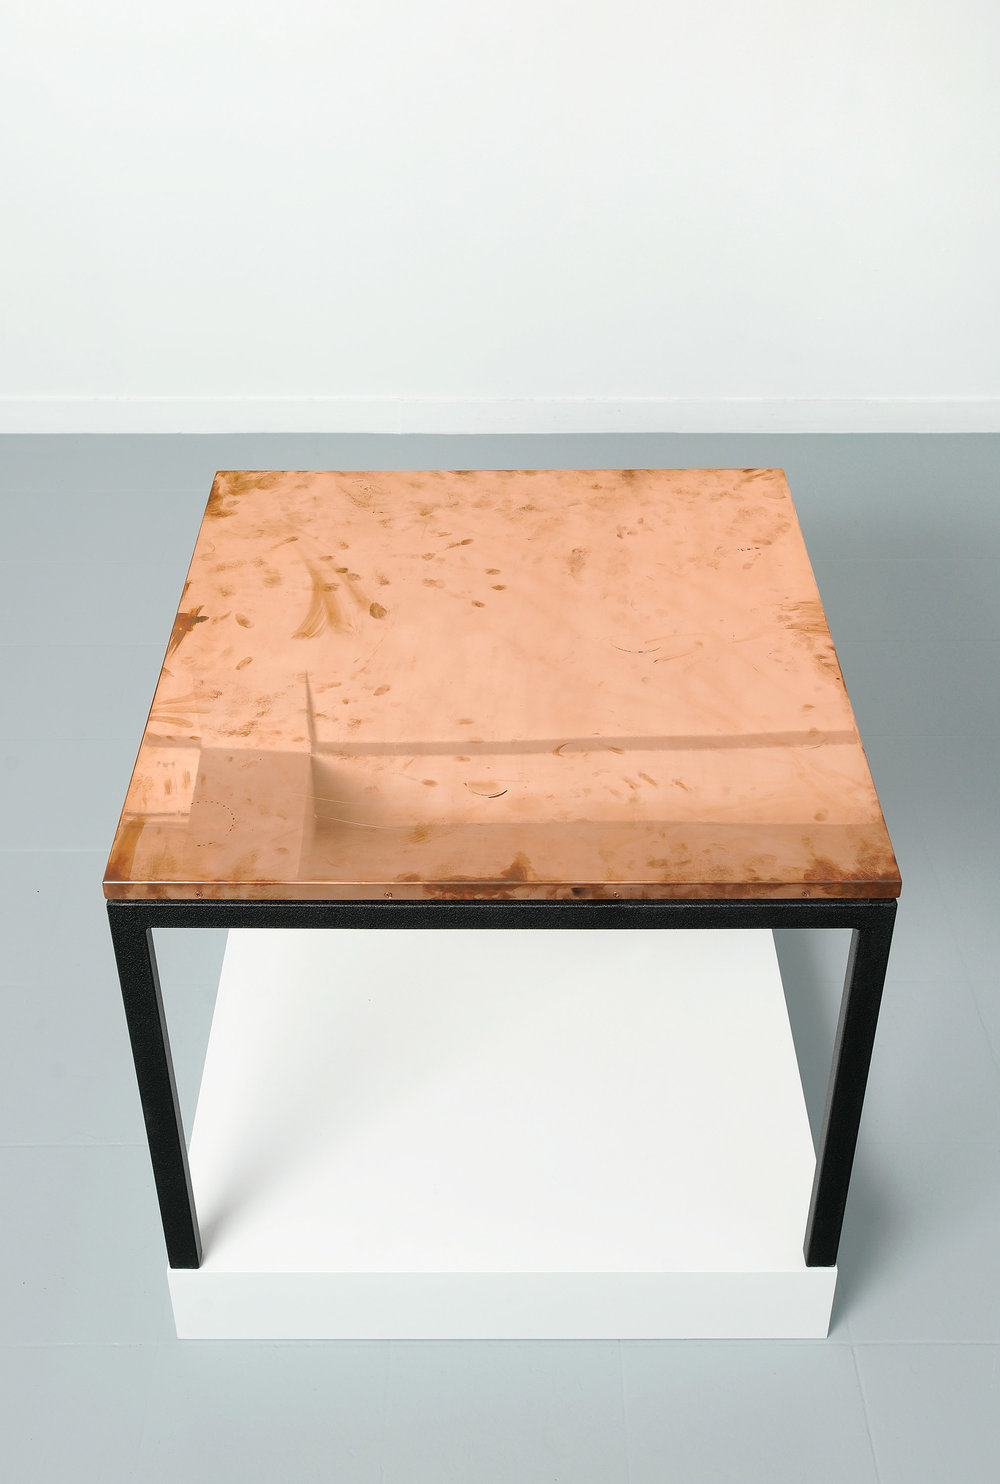 Copper Surrogate (Table: designed by Charlotte Perriand and Le Corbusier, 1959; Galerie Rodolphe Janssen, Brussels, Belgium, August 10th–September 2nd, 2011)   2011  Polished copper table top and powder-coat steel  Table: 33 5/8 x 33 5/8 x 1 inches   Surrogates (Tabletop and Desktop), 2008–    Diapositives, 2011